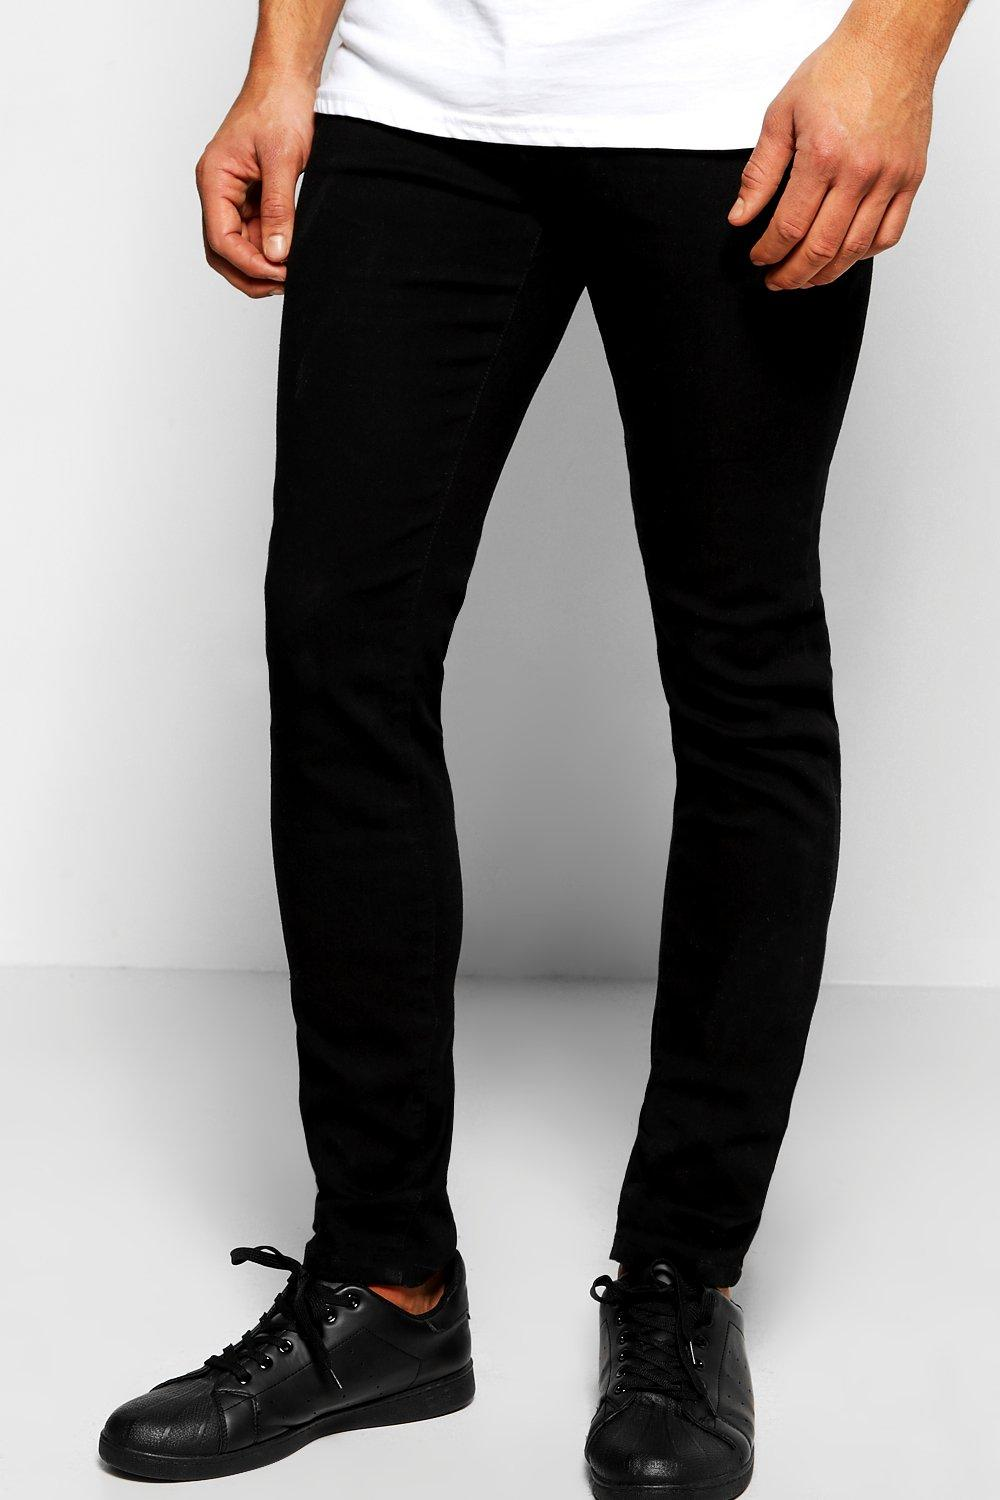 Jeans Jeans negro skinny elásticos negro Jeans skinny elásticos 7IqPpd